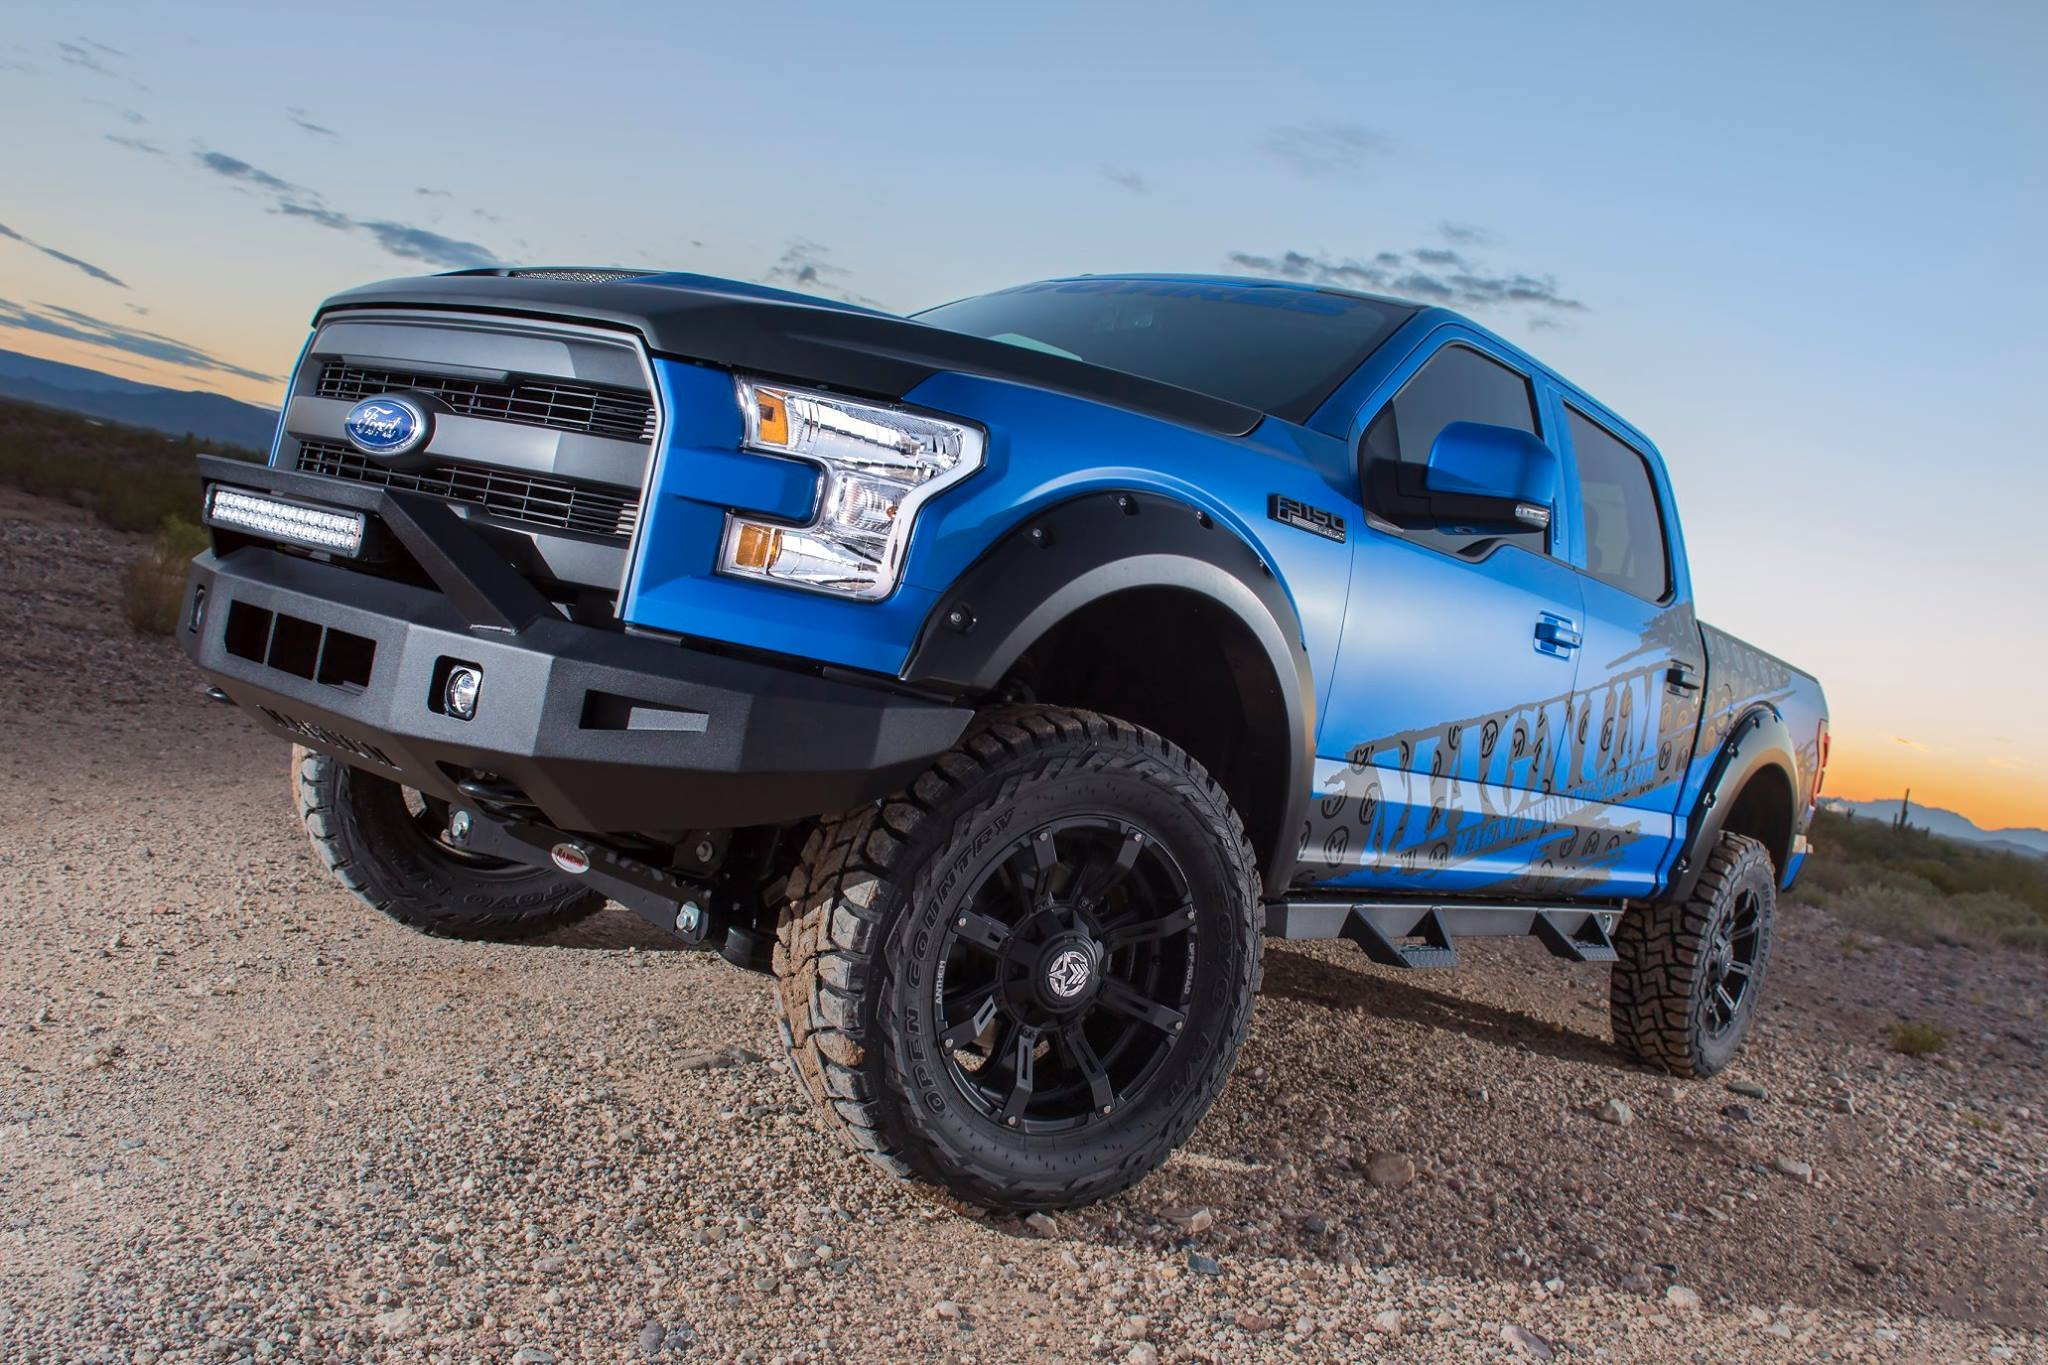 Lifted 2016 Ford F150 with ICI magnum side steps and bumpers - Photo by ICI Innovative Creations Inc.